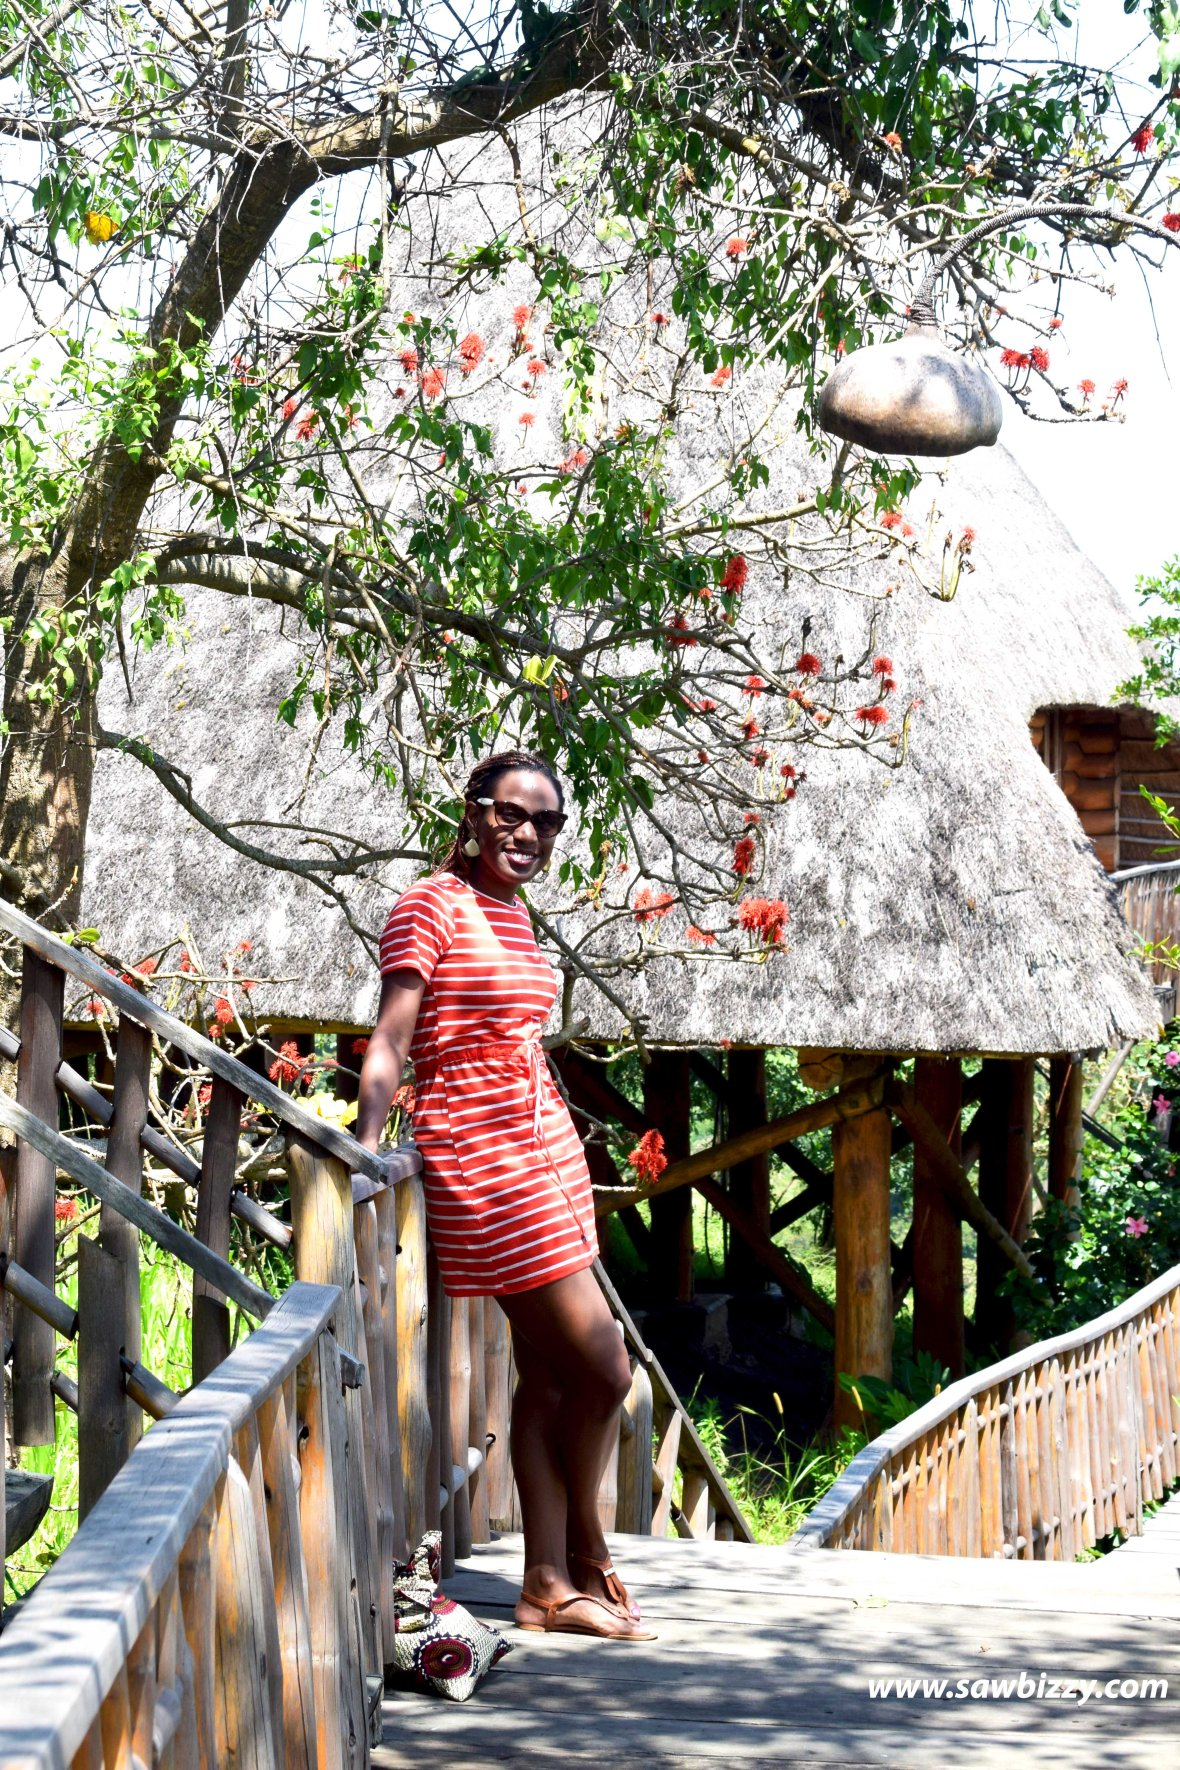 STAYING AT KYANINGA LODGE – Saw Bizzy